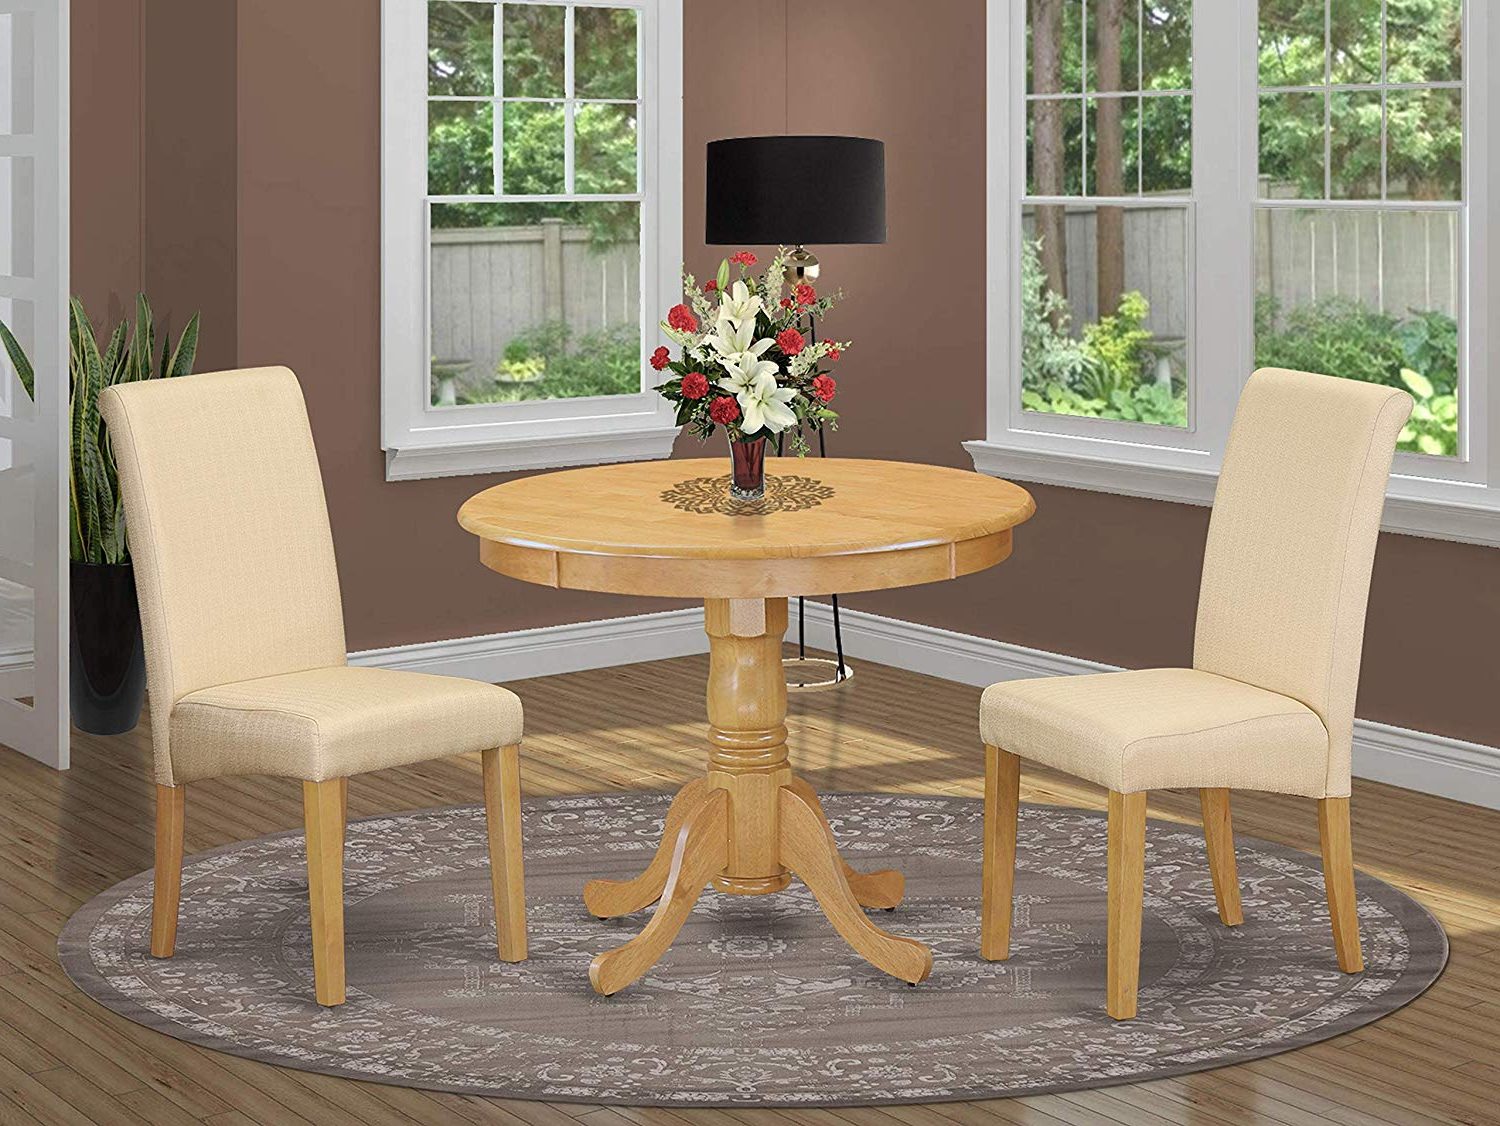 Trendy Elegance Small Round Dining Tables For Amazon: Anba3 Oak 02 3Pc Small Round Table With Linen (Gallery 23 of 30)